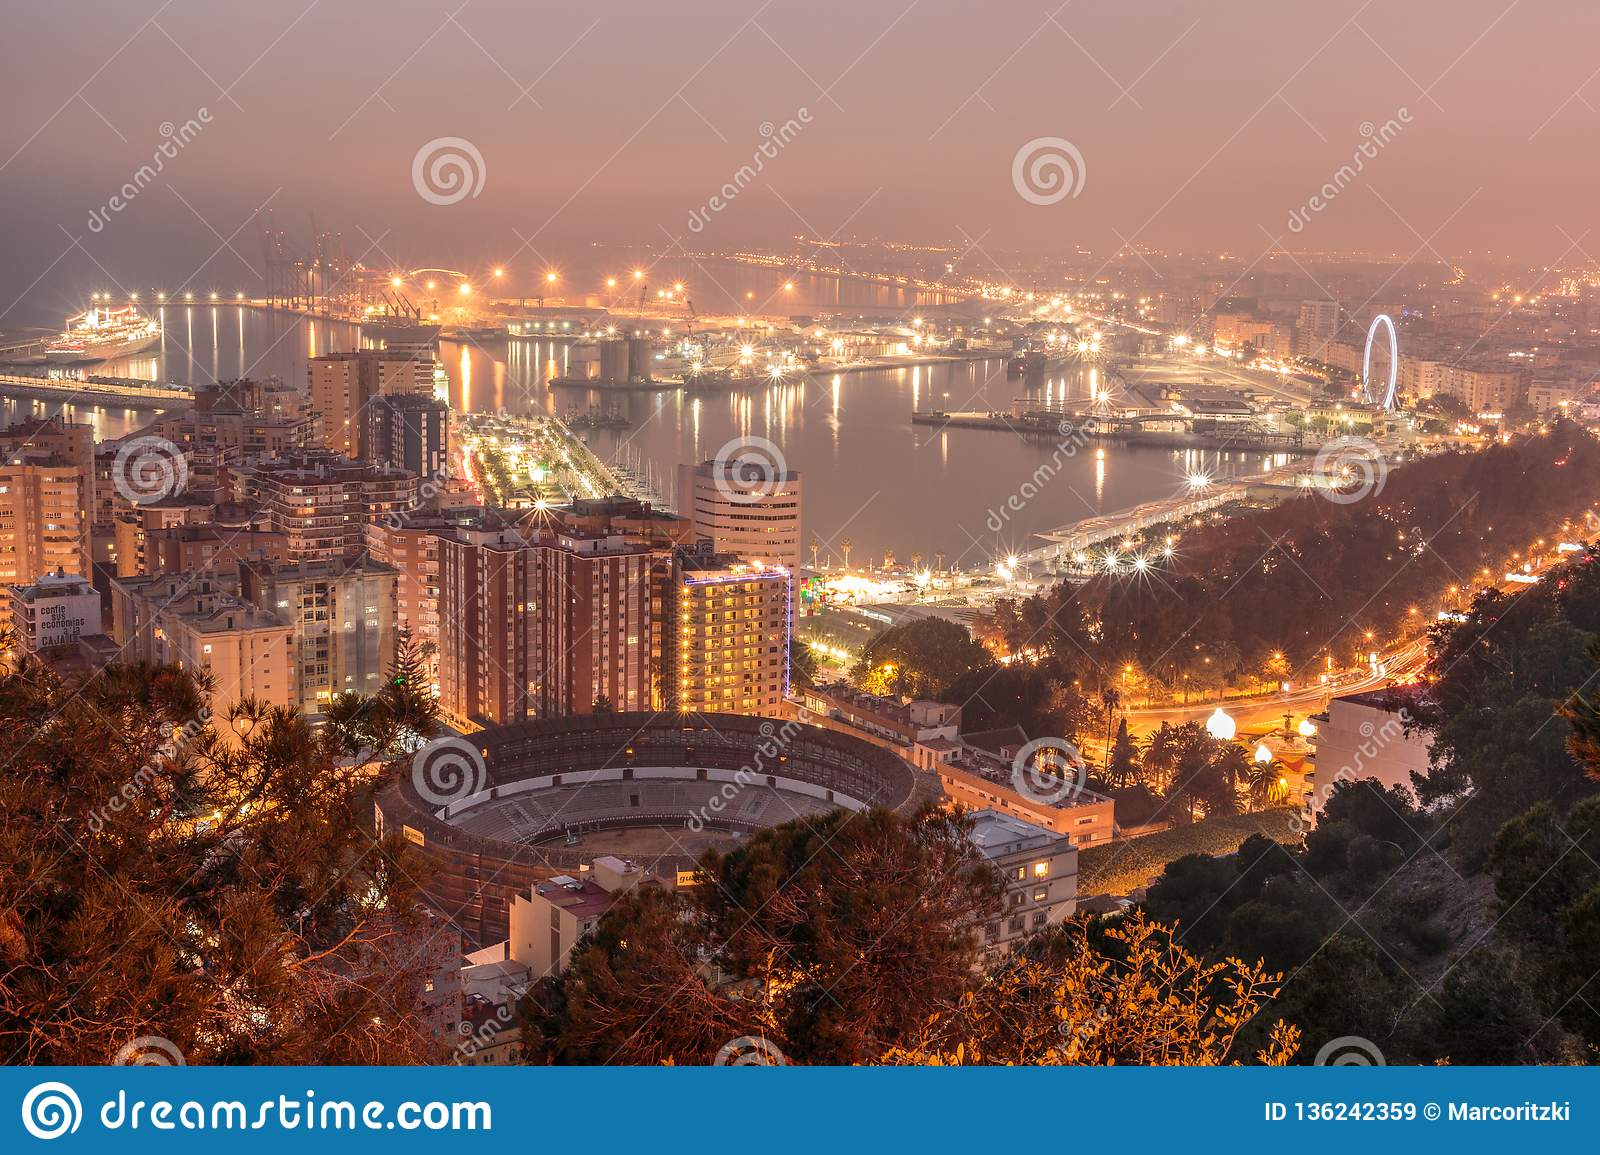 Malaga at night with harbor and ships and lighting area